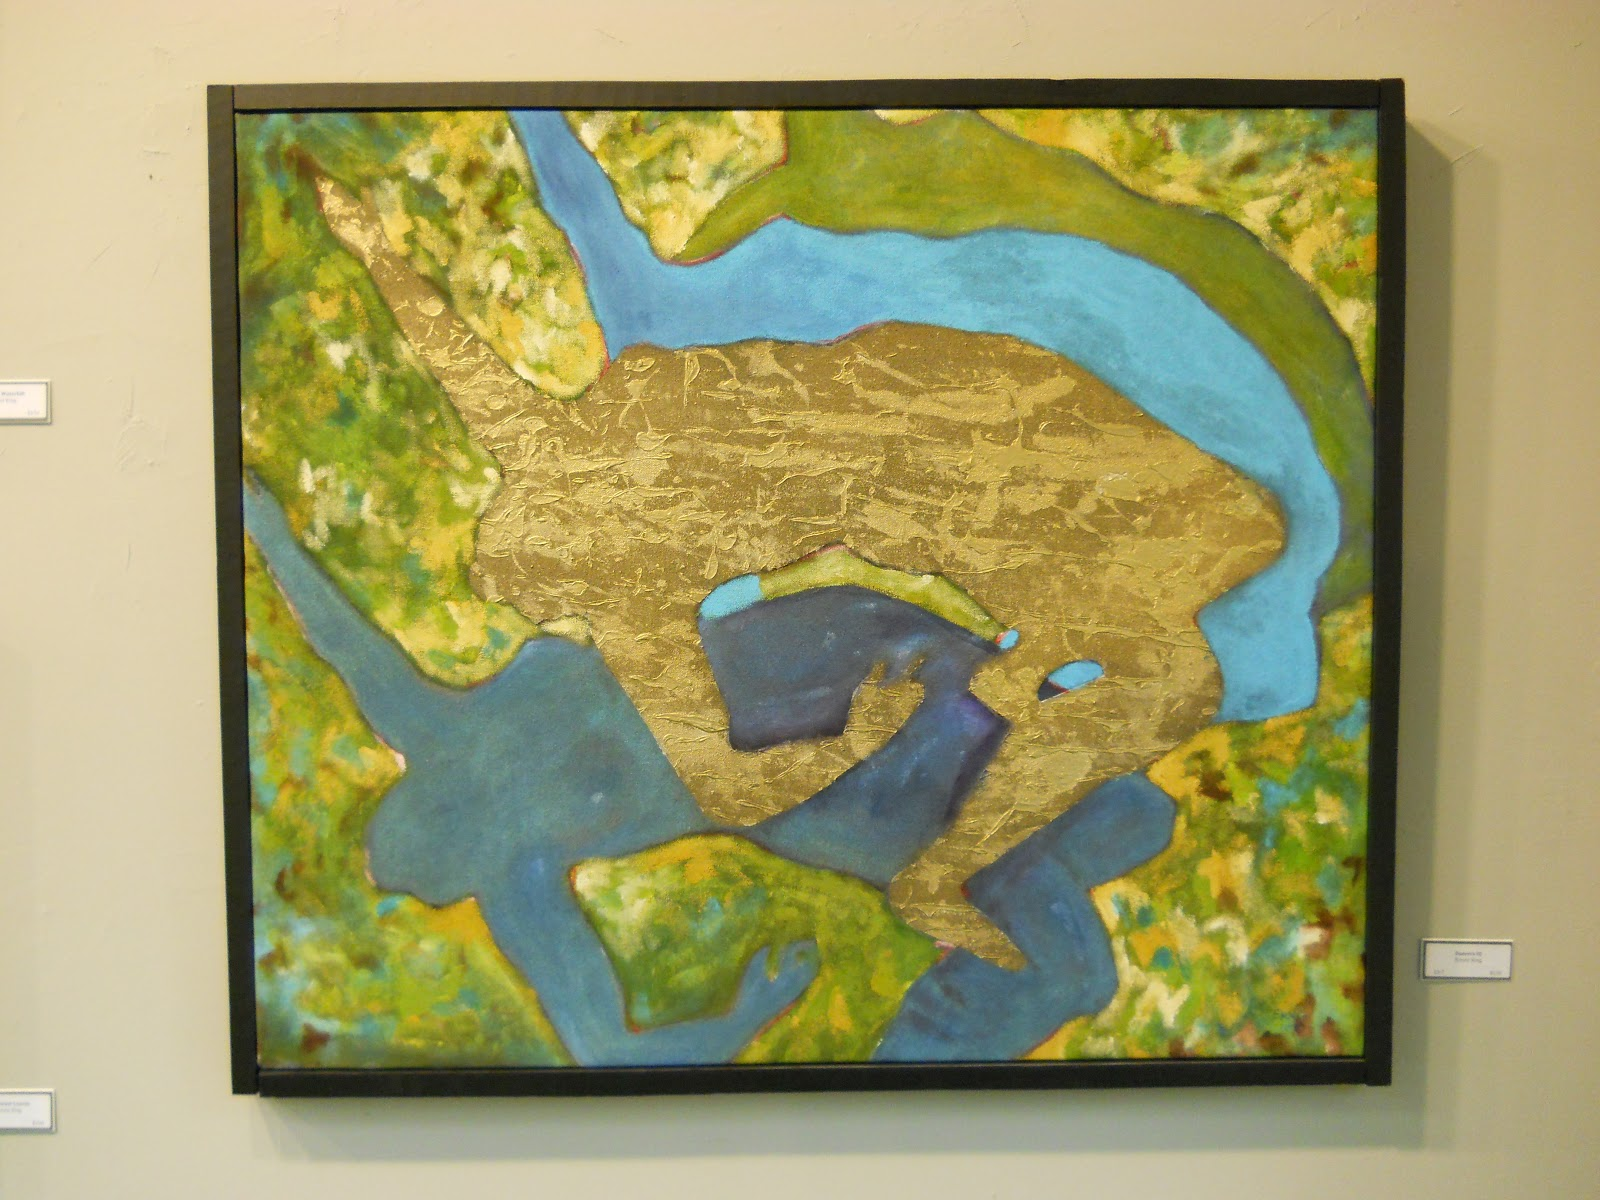 Oak Hollow Gallery: New Show - Ernest King, Paintings and Gary ...